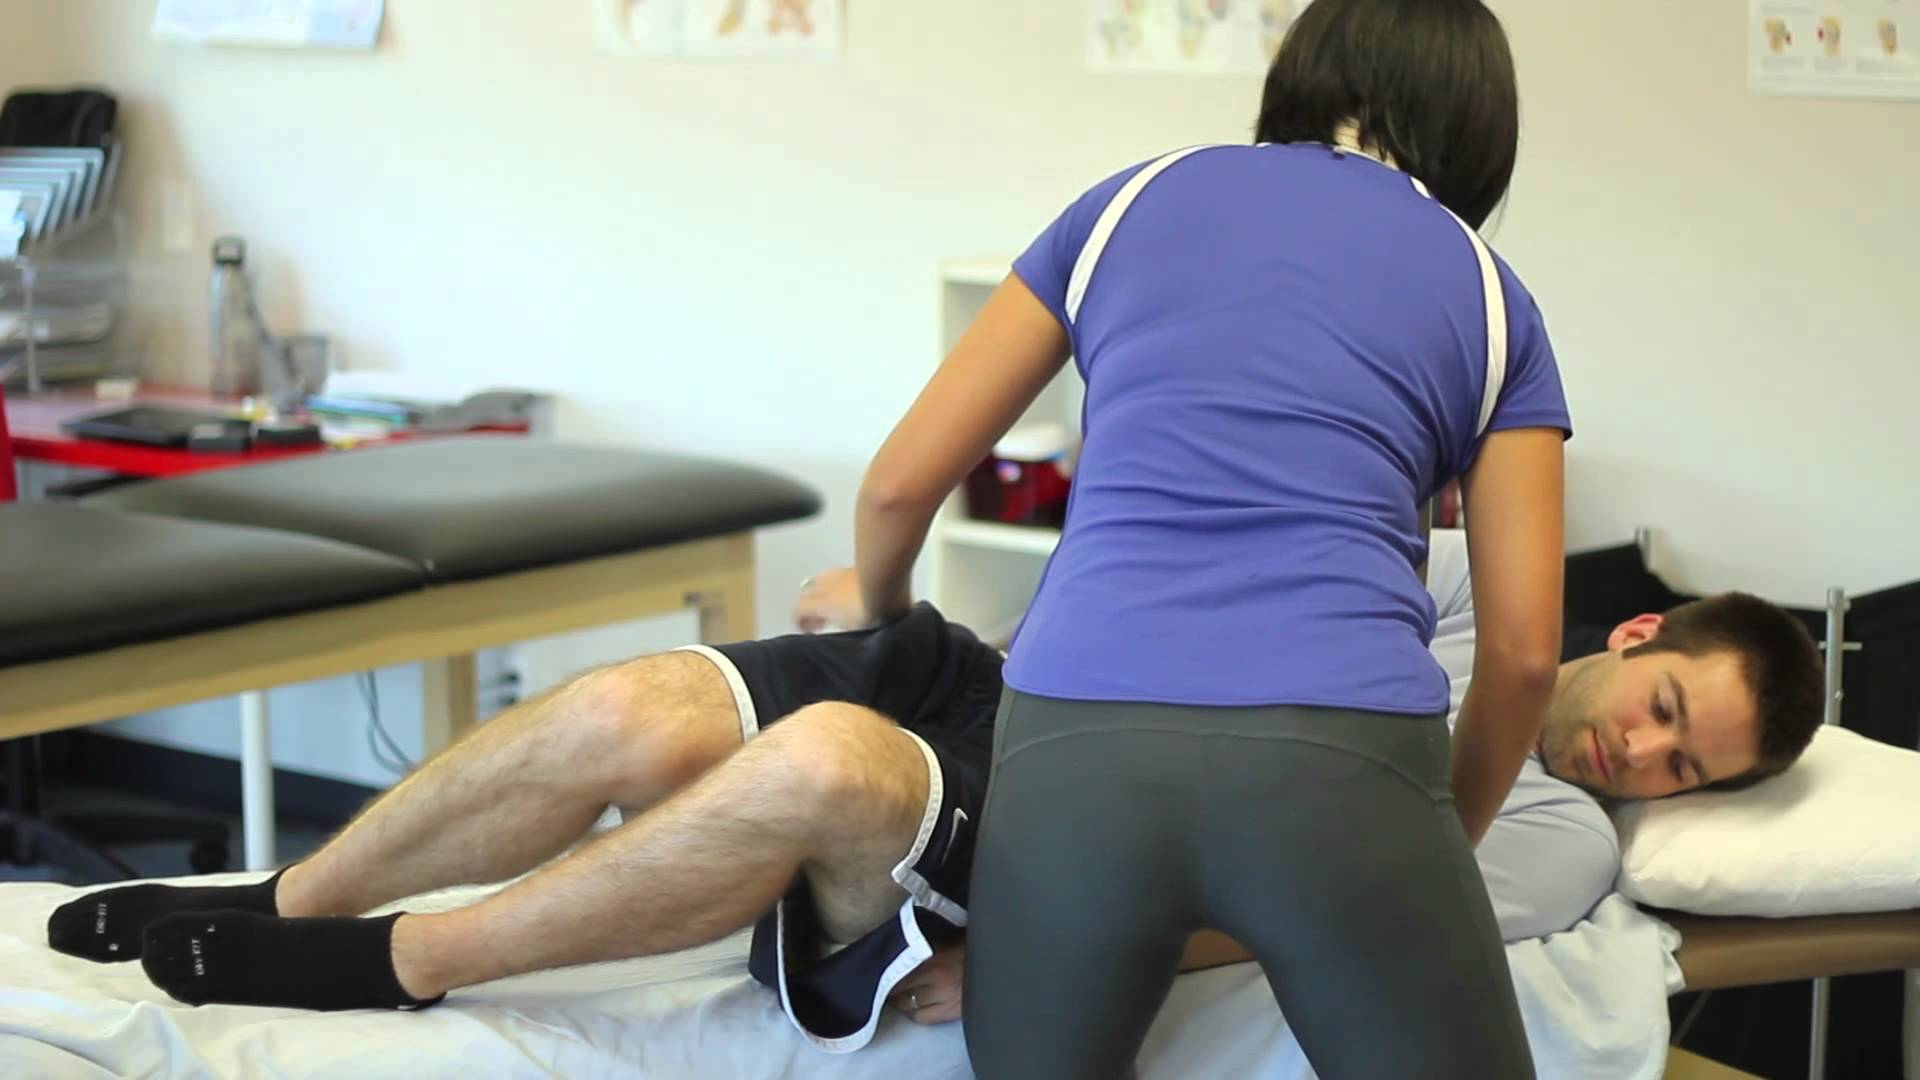 Learn How To Transfer A Patient From The Bed To A